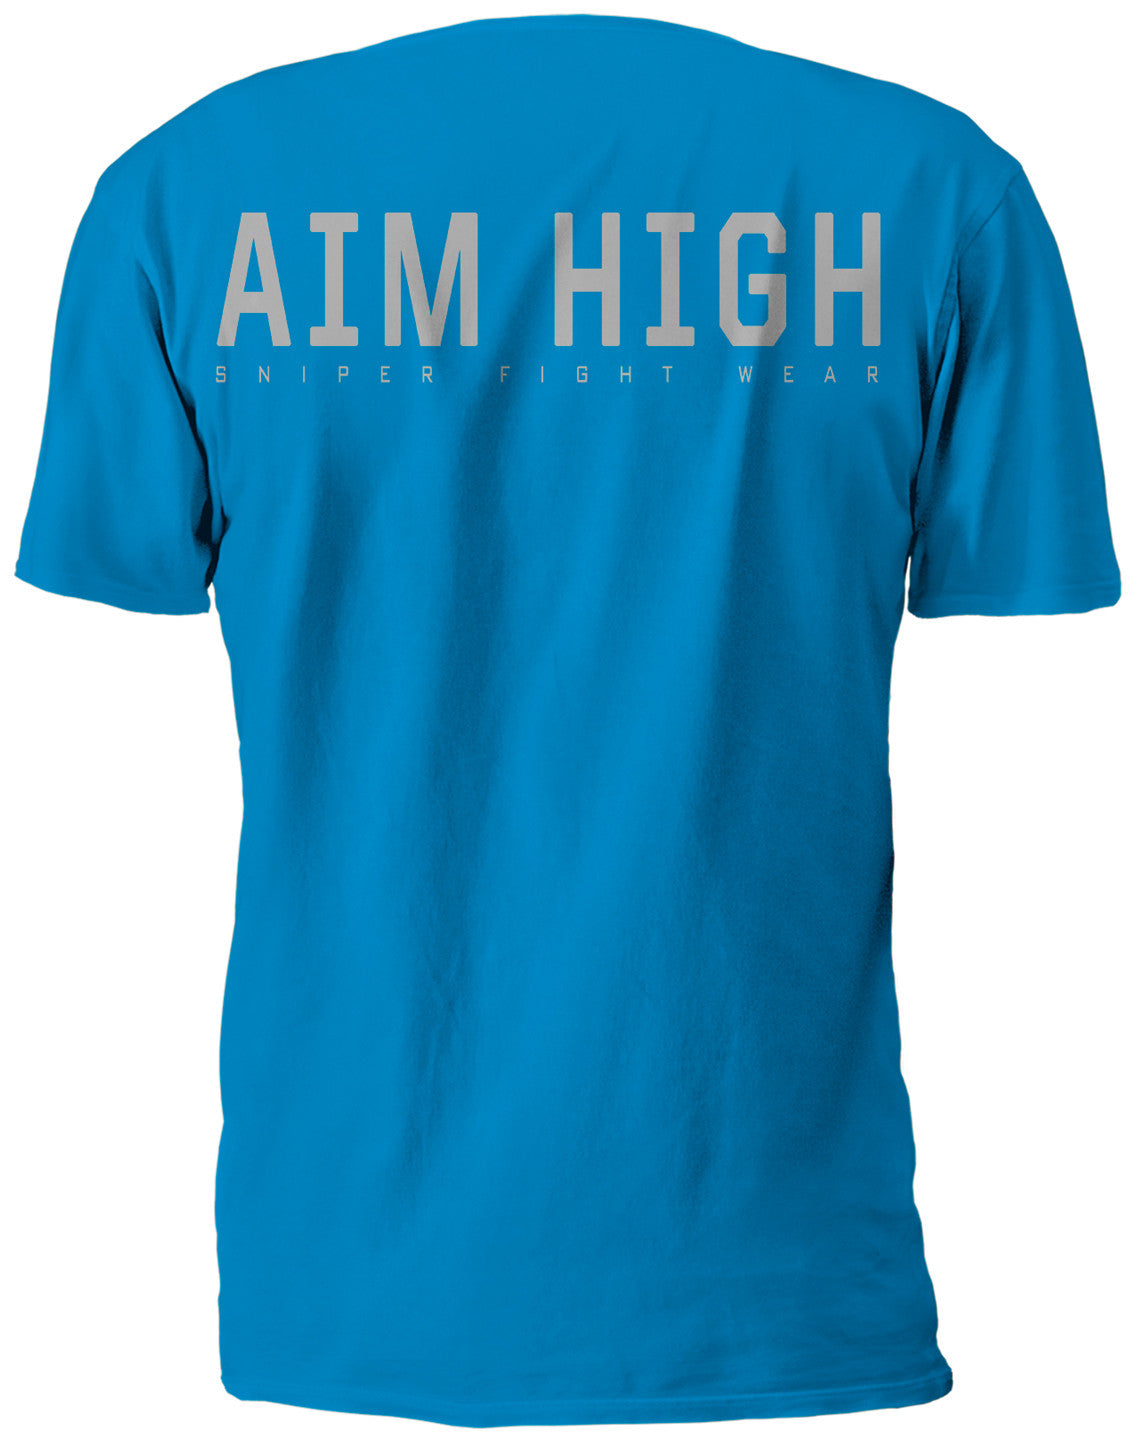 SFW AIM HIGH S/S MODERN FIT T-SHIRT